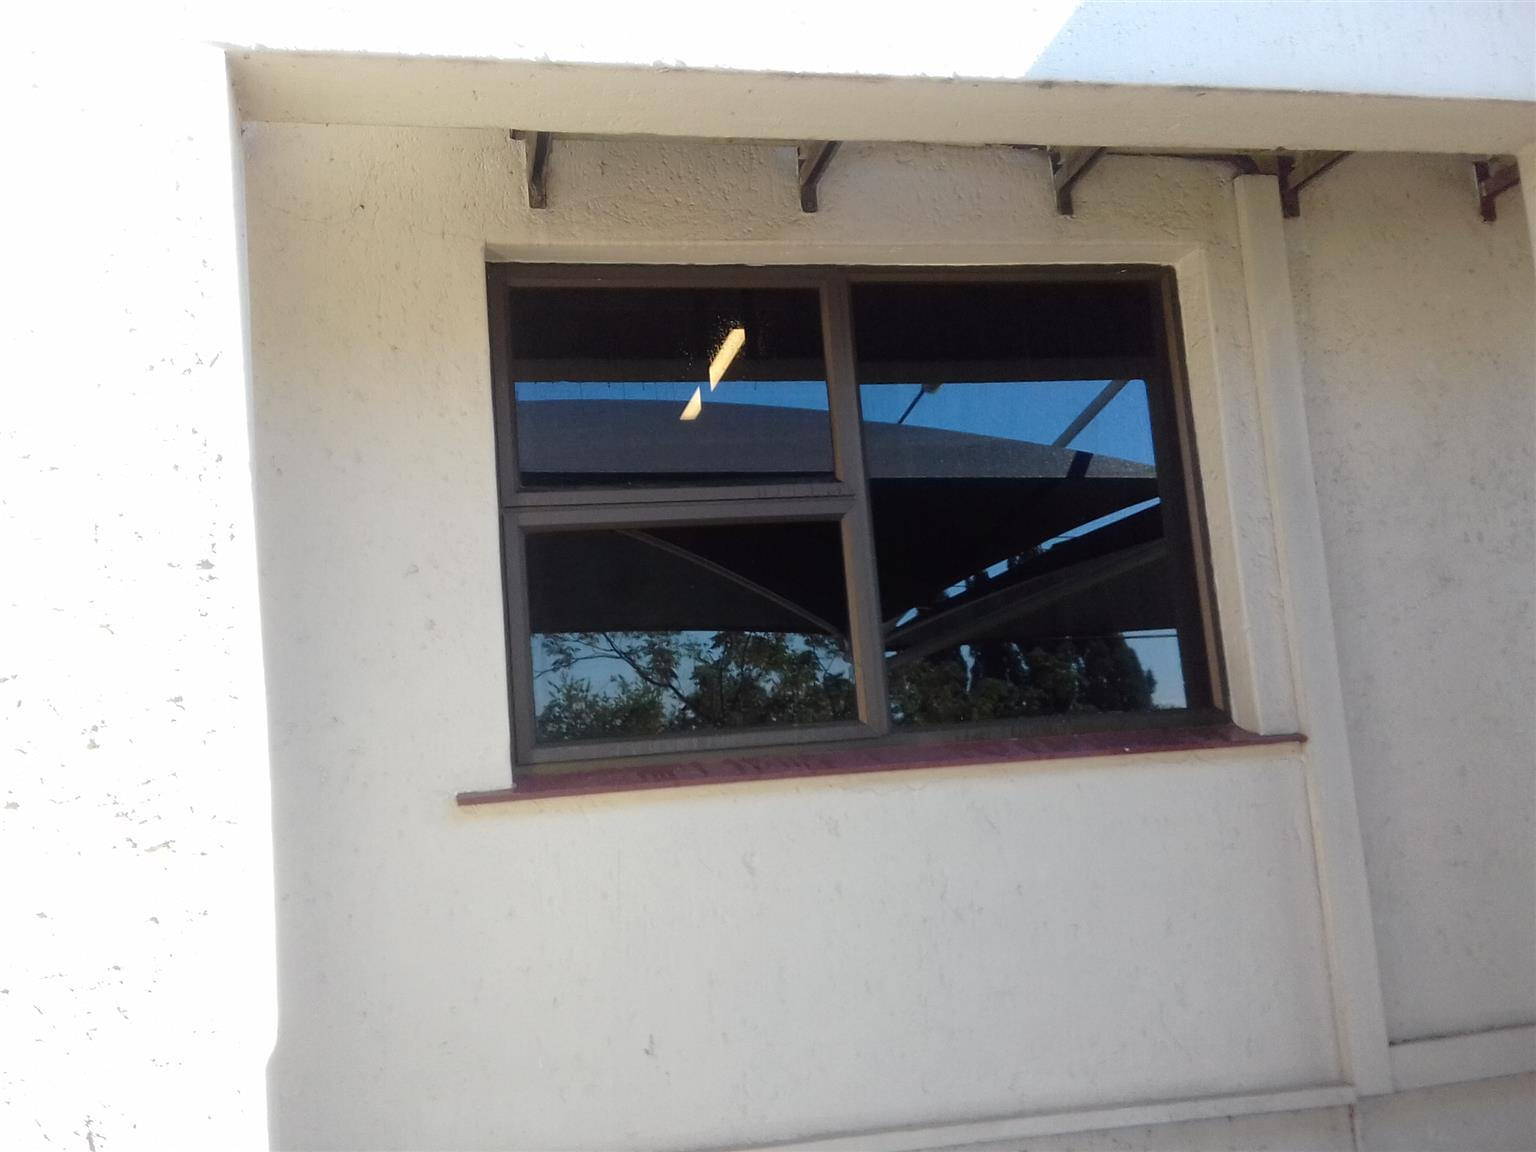 Summer specials for solar window window